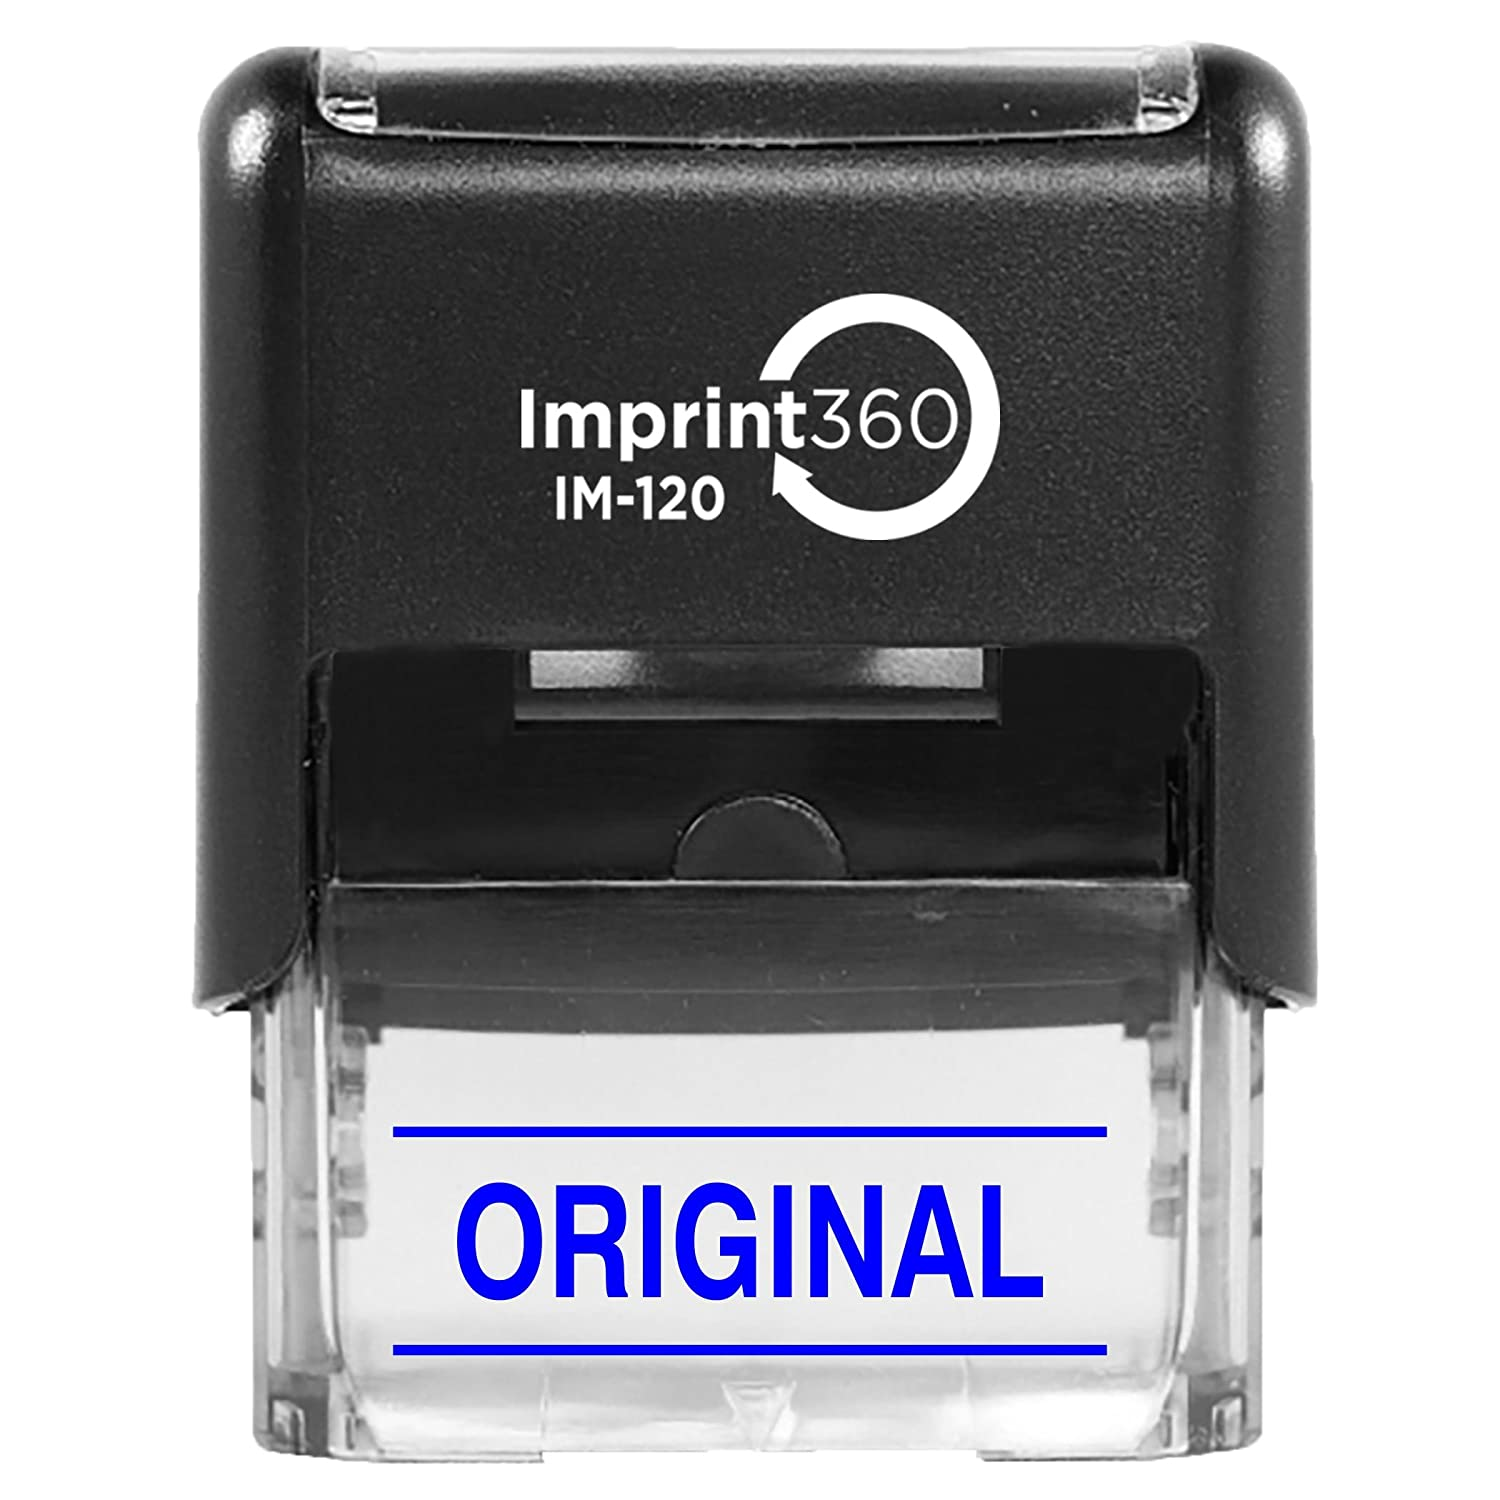 Heavy Duty Commerical Self-Inking Rubber Stamp 9//16 x 1-1//2 Impression Original w//Upper and Lower Bars Supply360 AS-IMP1129K Black Ink